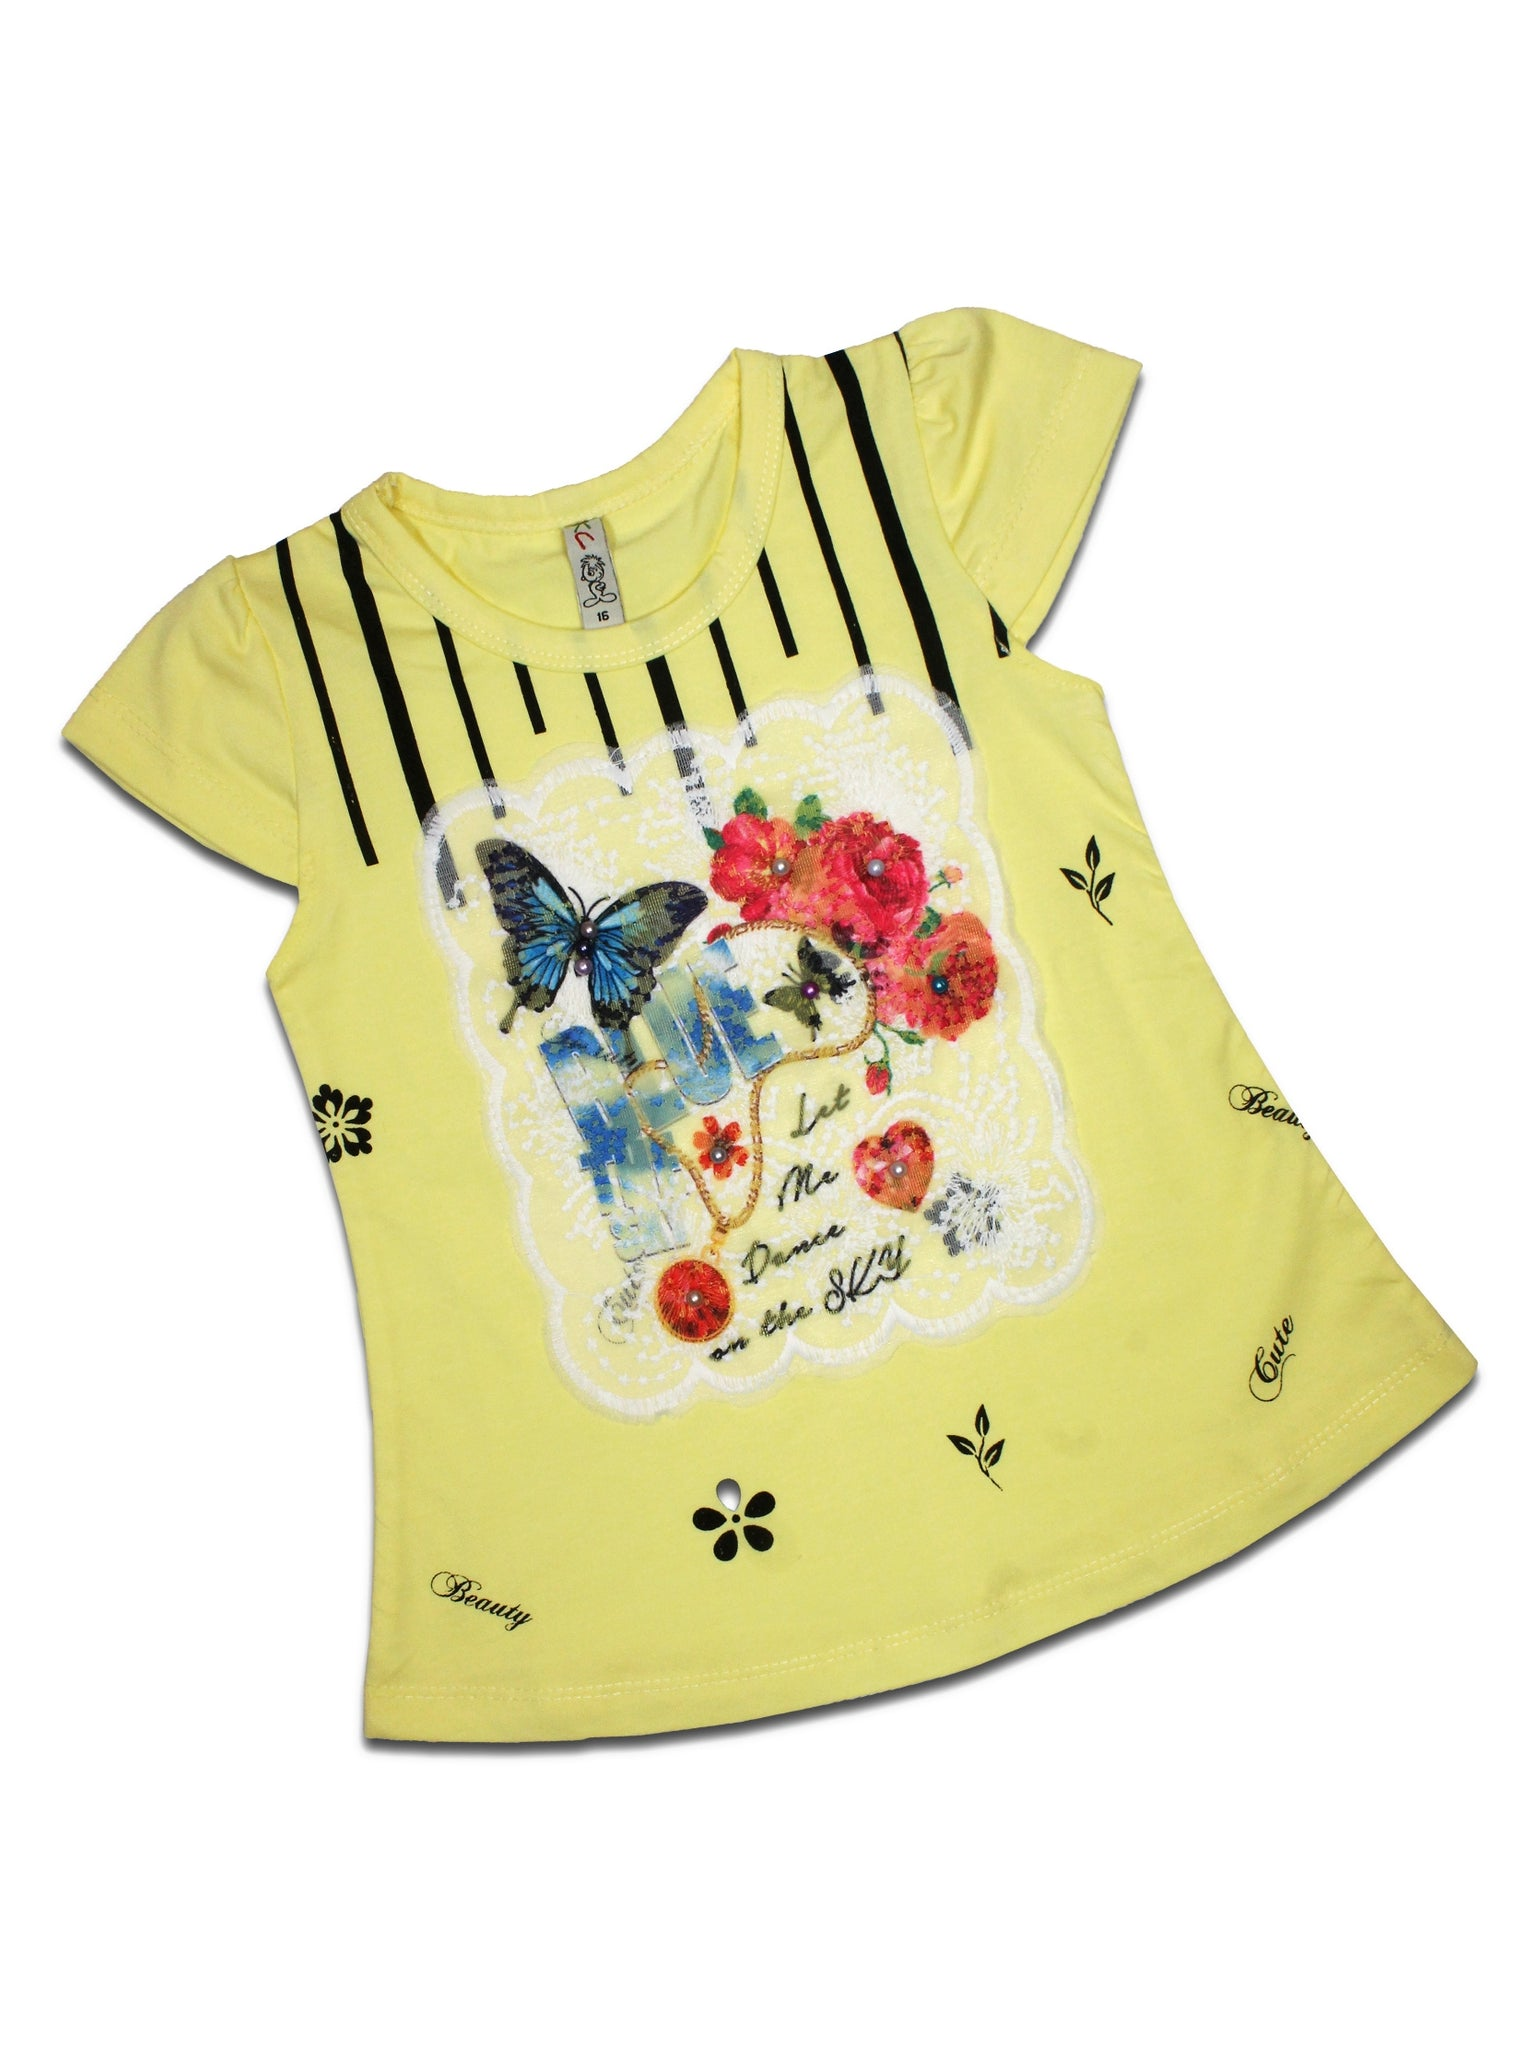 AK3 2.5Yrs - 8Yrs T-Shirt For Girls Net Embroidery Butterfly Style Candles Yellow